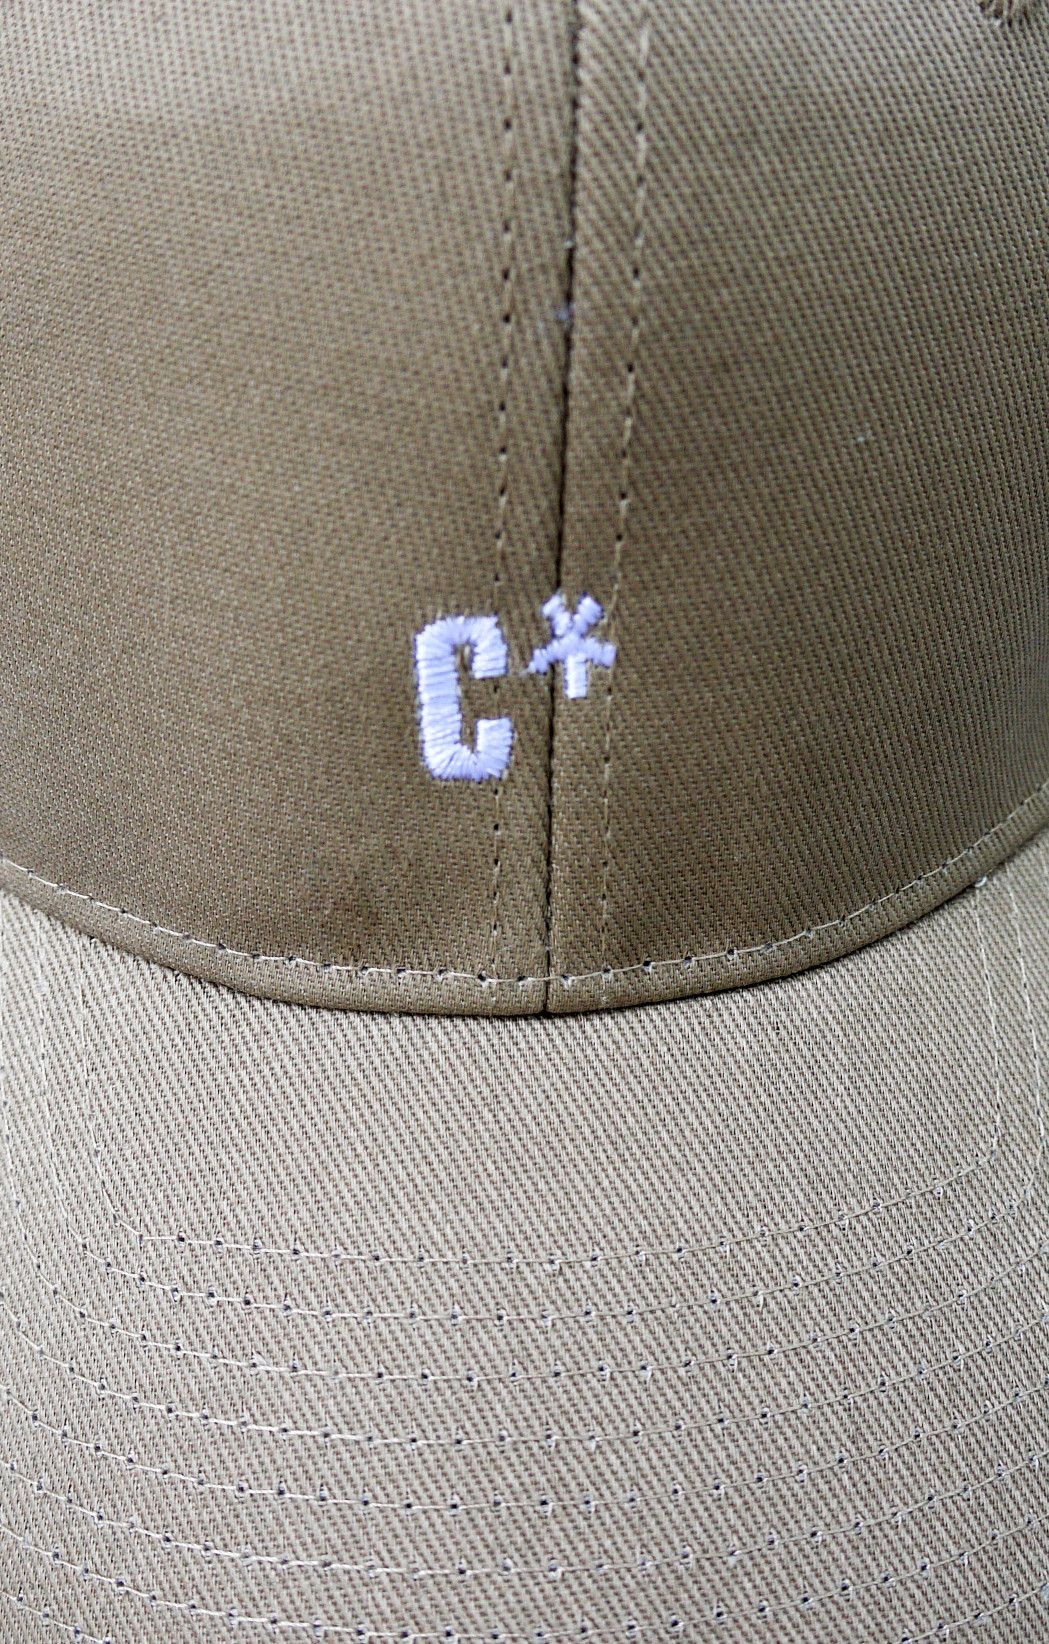 The CXX Curved Brim Baseball Cap | Tan - BKBT Concept